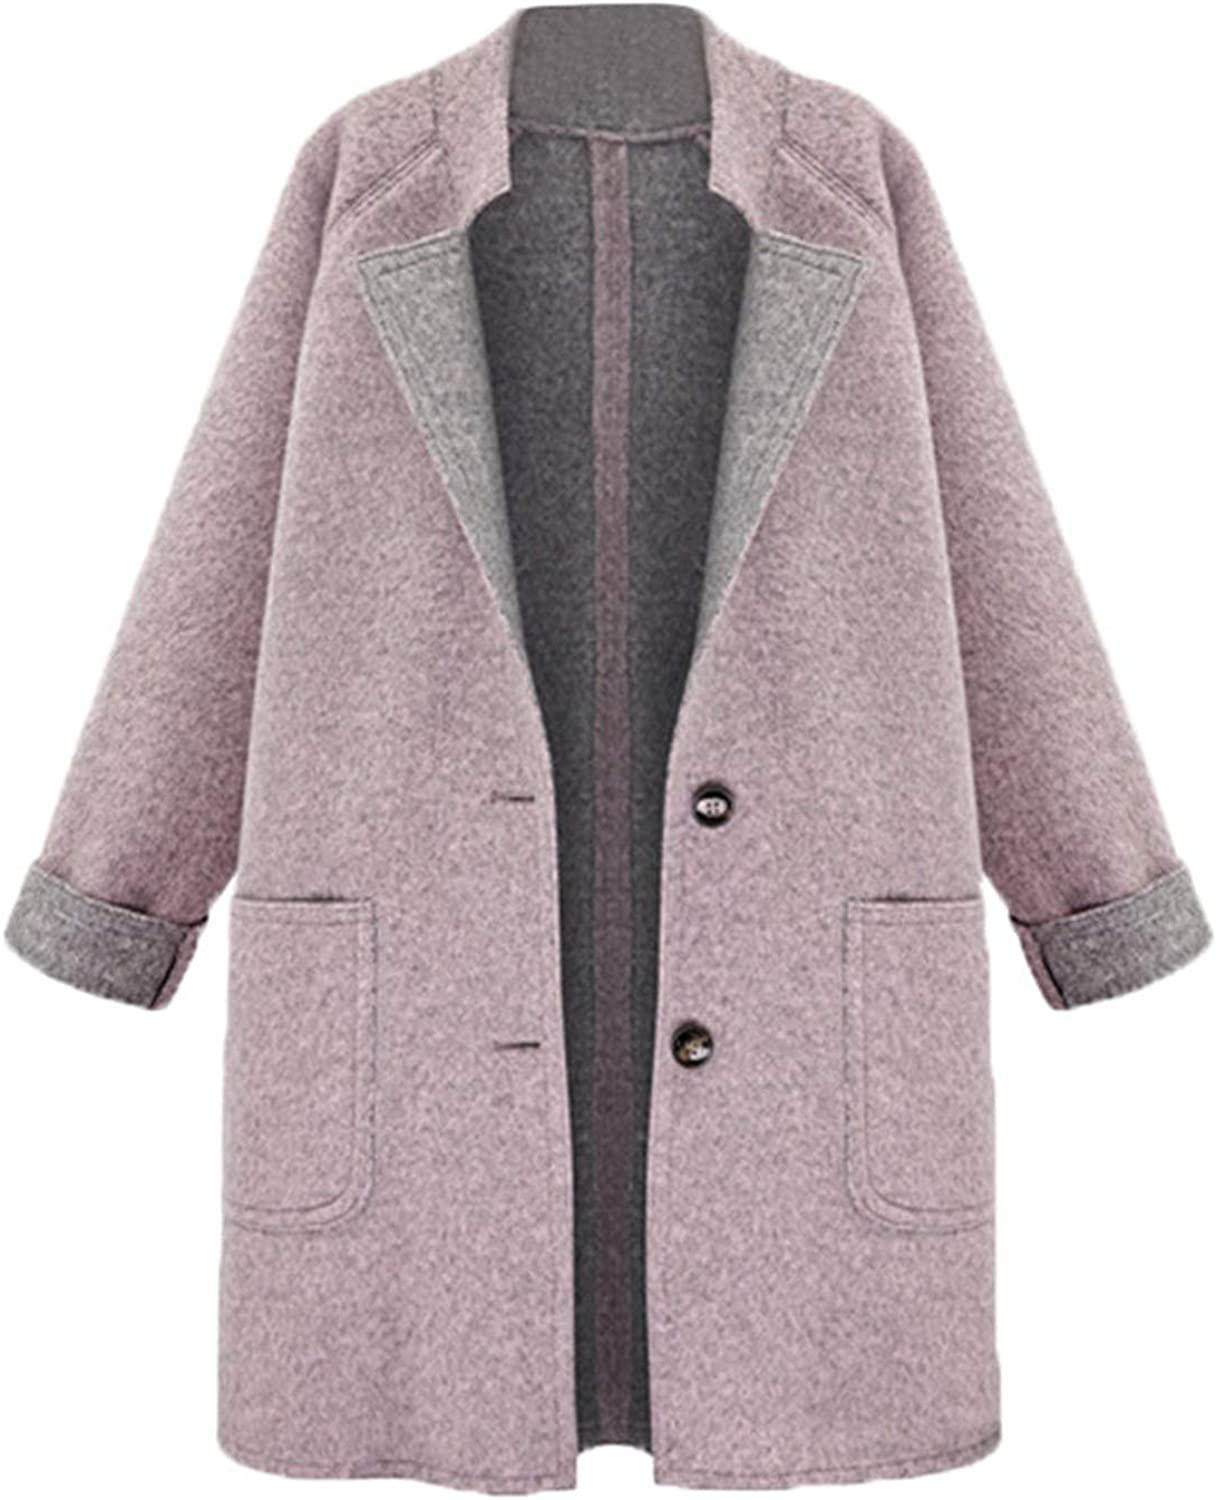 colorfulspace 2019 TOP Womens Winter Lapel Wool Coat Loose Plus Overcoat Outwear 11.9